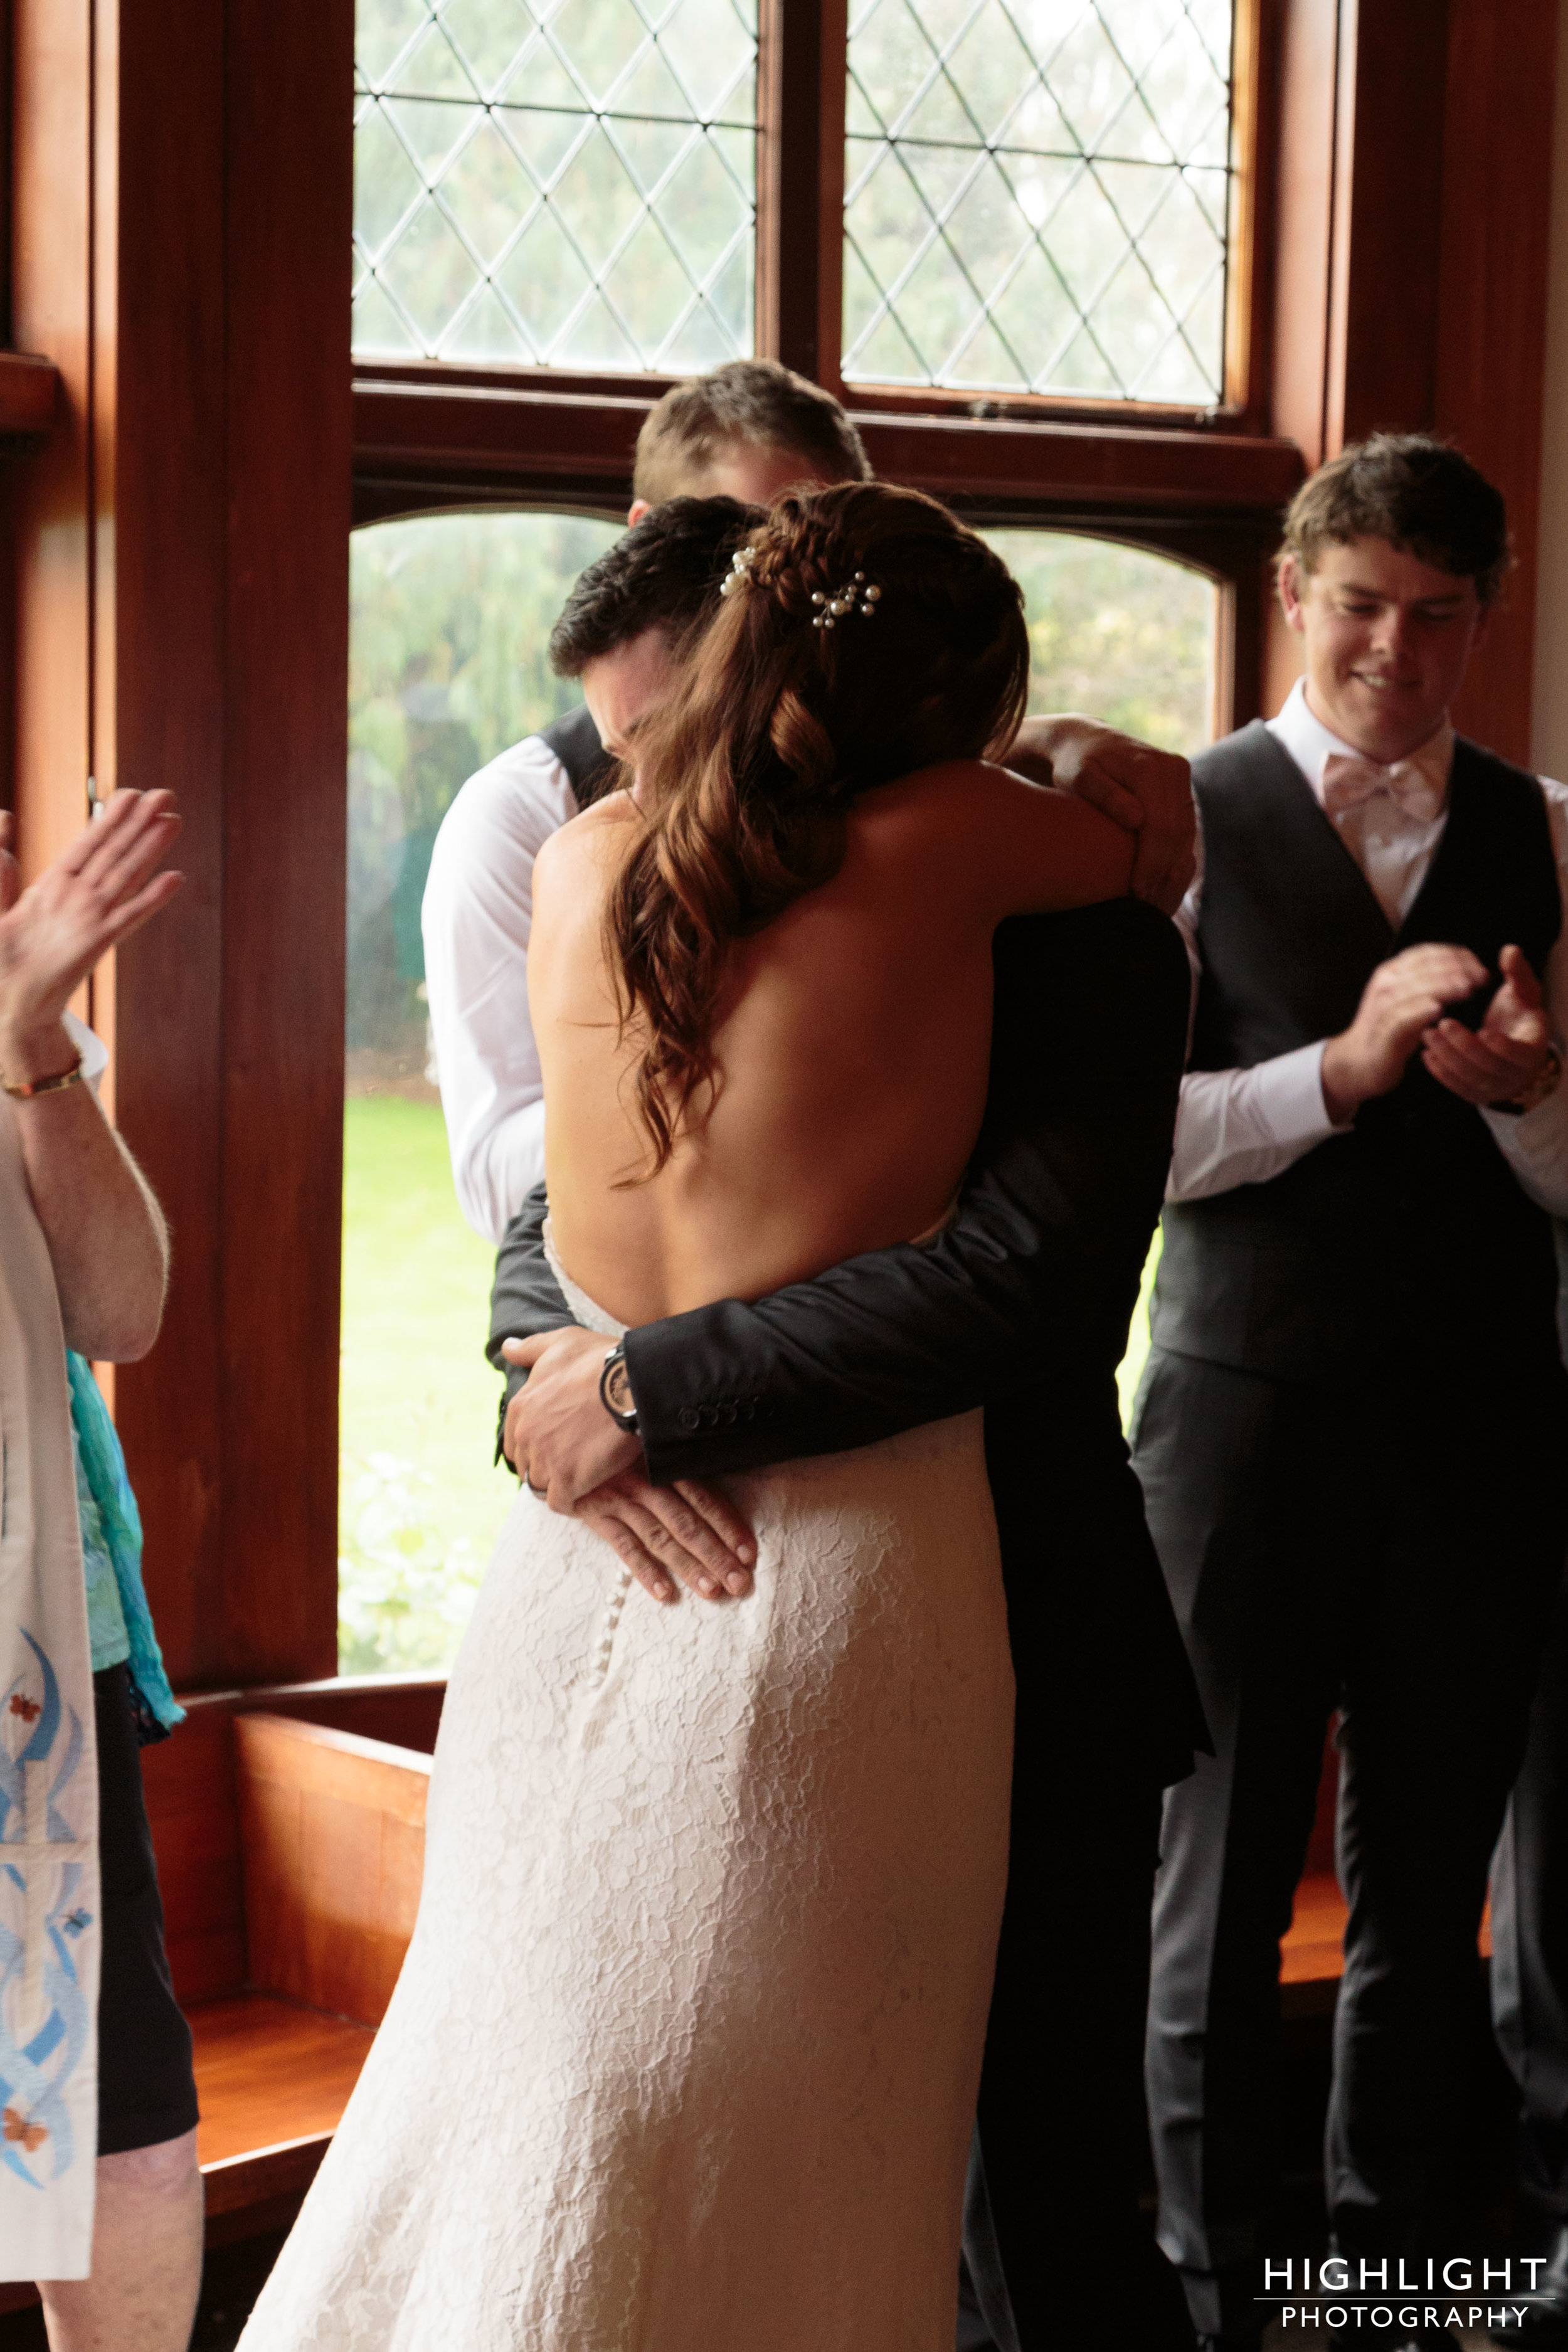 highlight-wedding-photography-palmerston-north-new-zealand-sarahben-2017-33.jpg